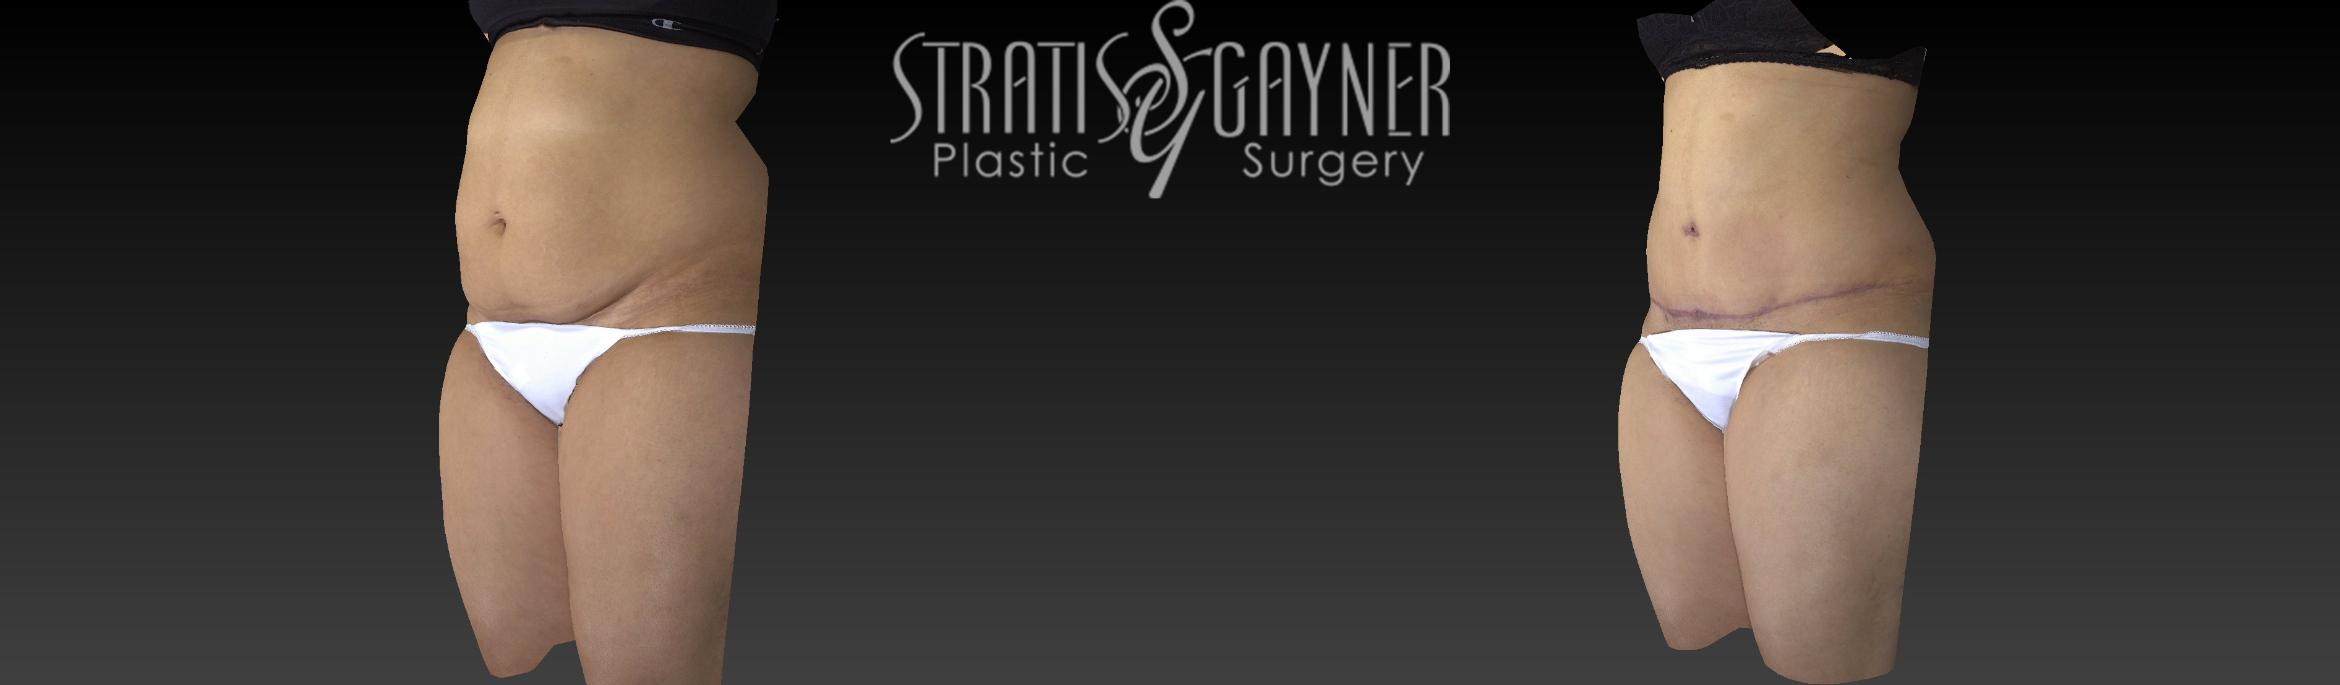 Tummy Tuck Case 17 Before & After View #4 | Harrisburg, PA | Stratis Gayner Plastic Surgery